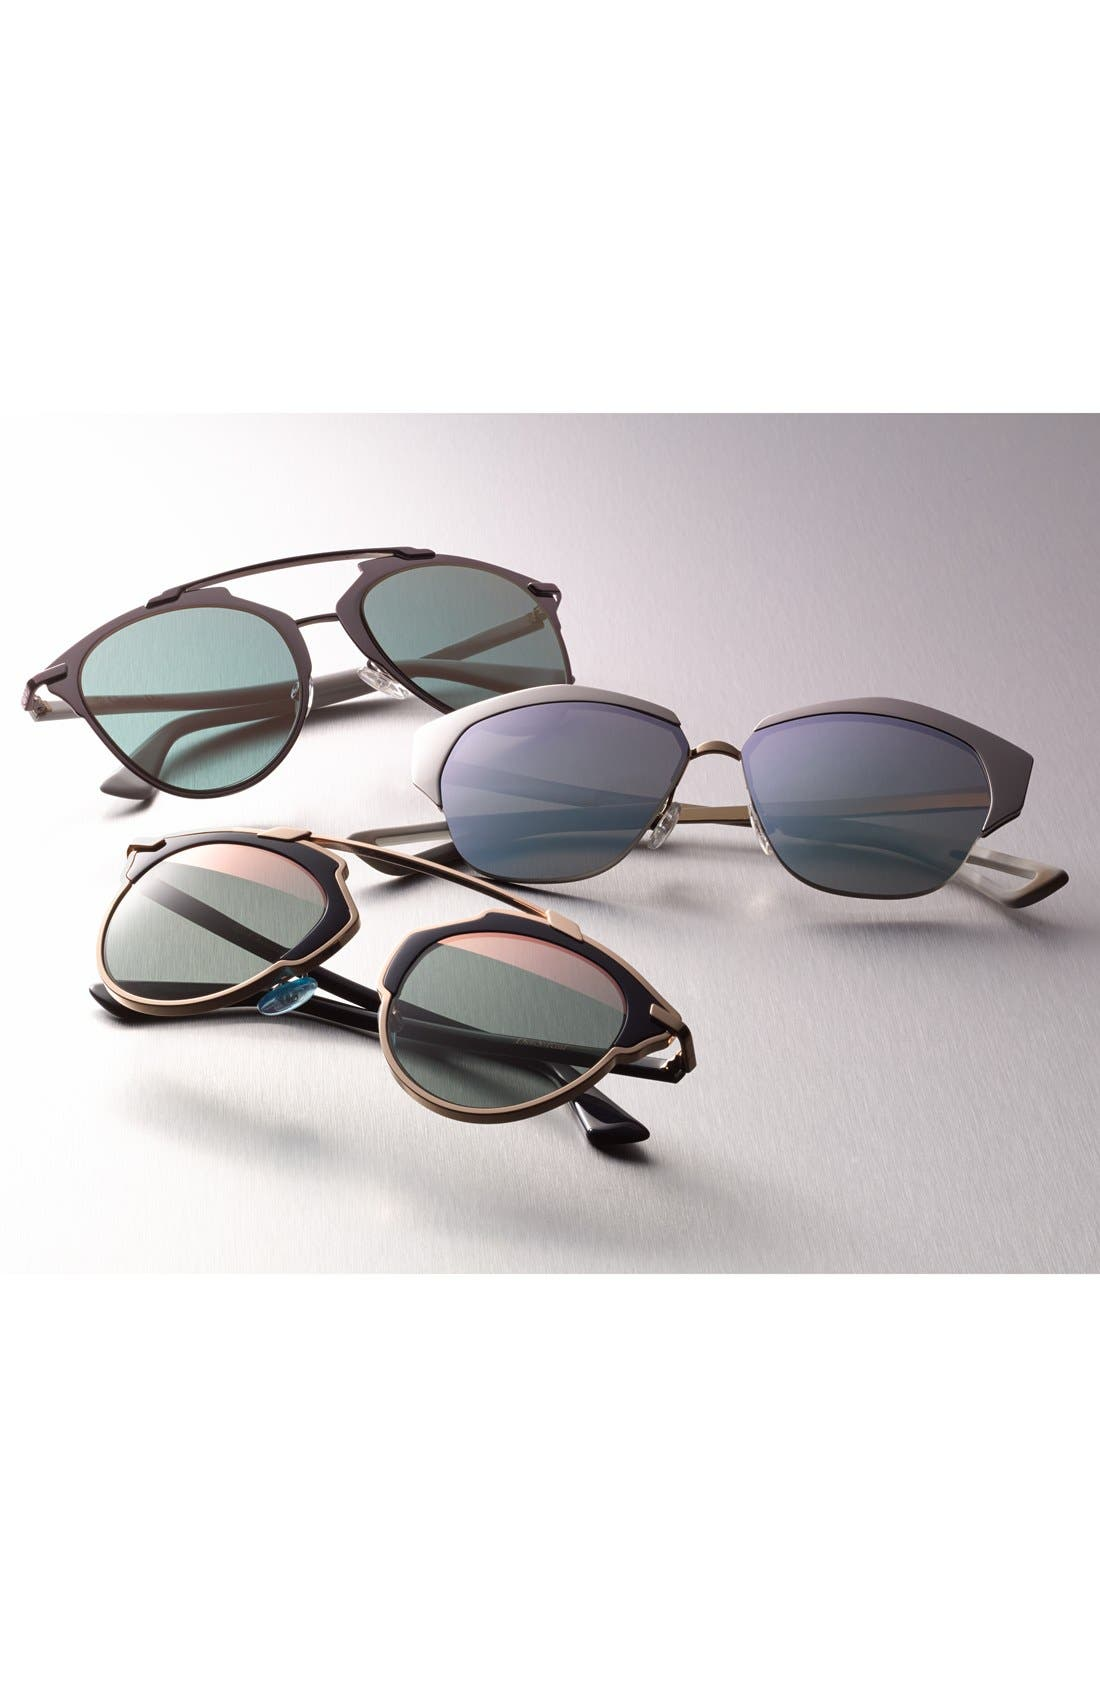 Alternate Image 3  - Dior 'Mirrors' 55mm Cat Eye Sunglasses (Regular Retail Price: $490.00)